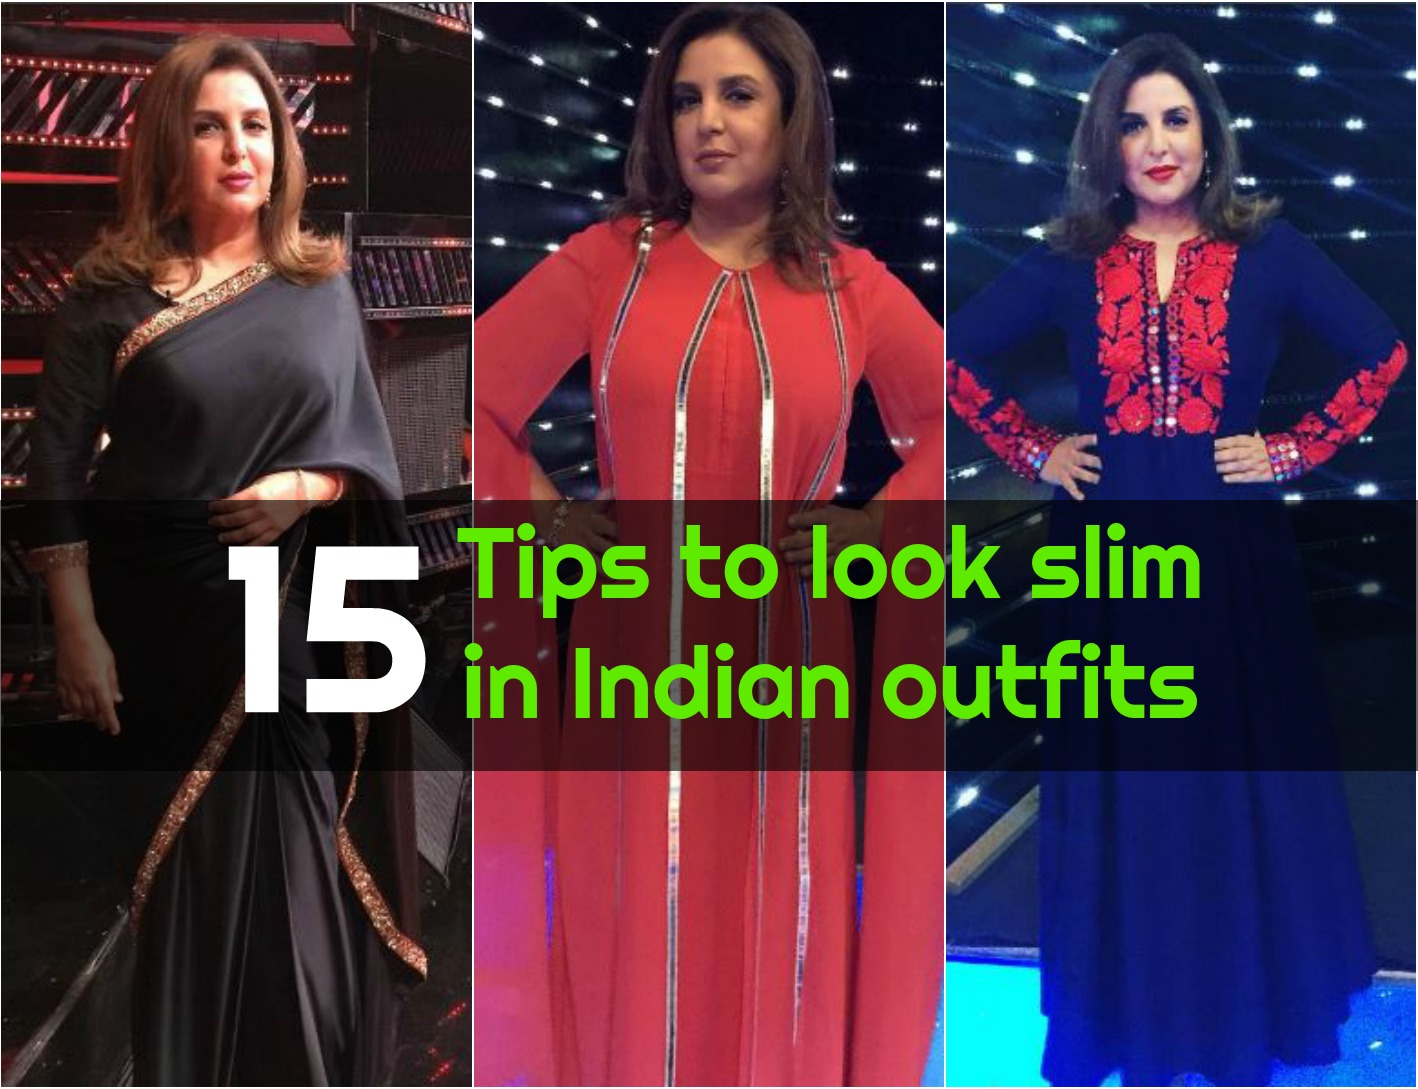 15 tips to look slim in Indian outfits